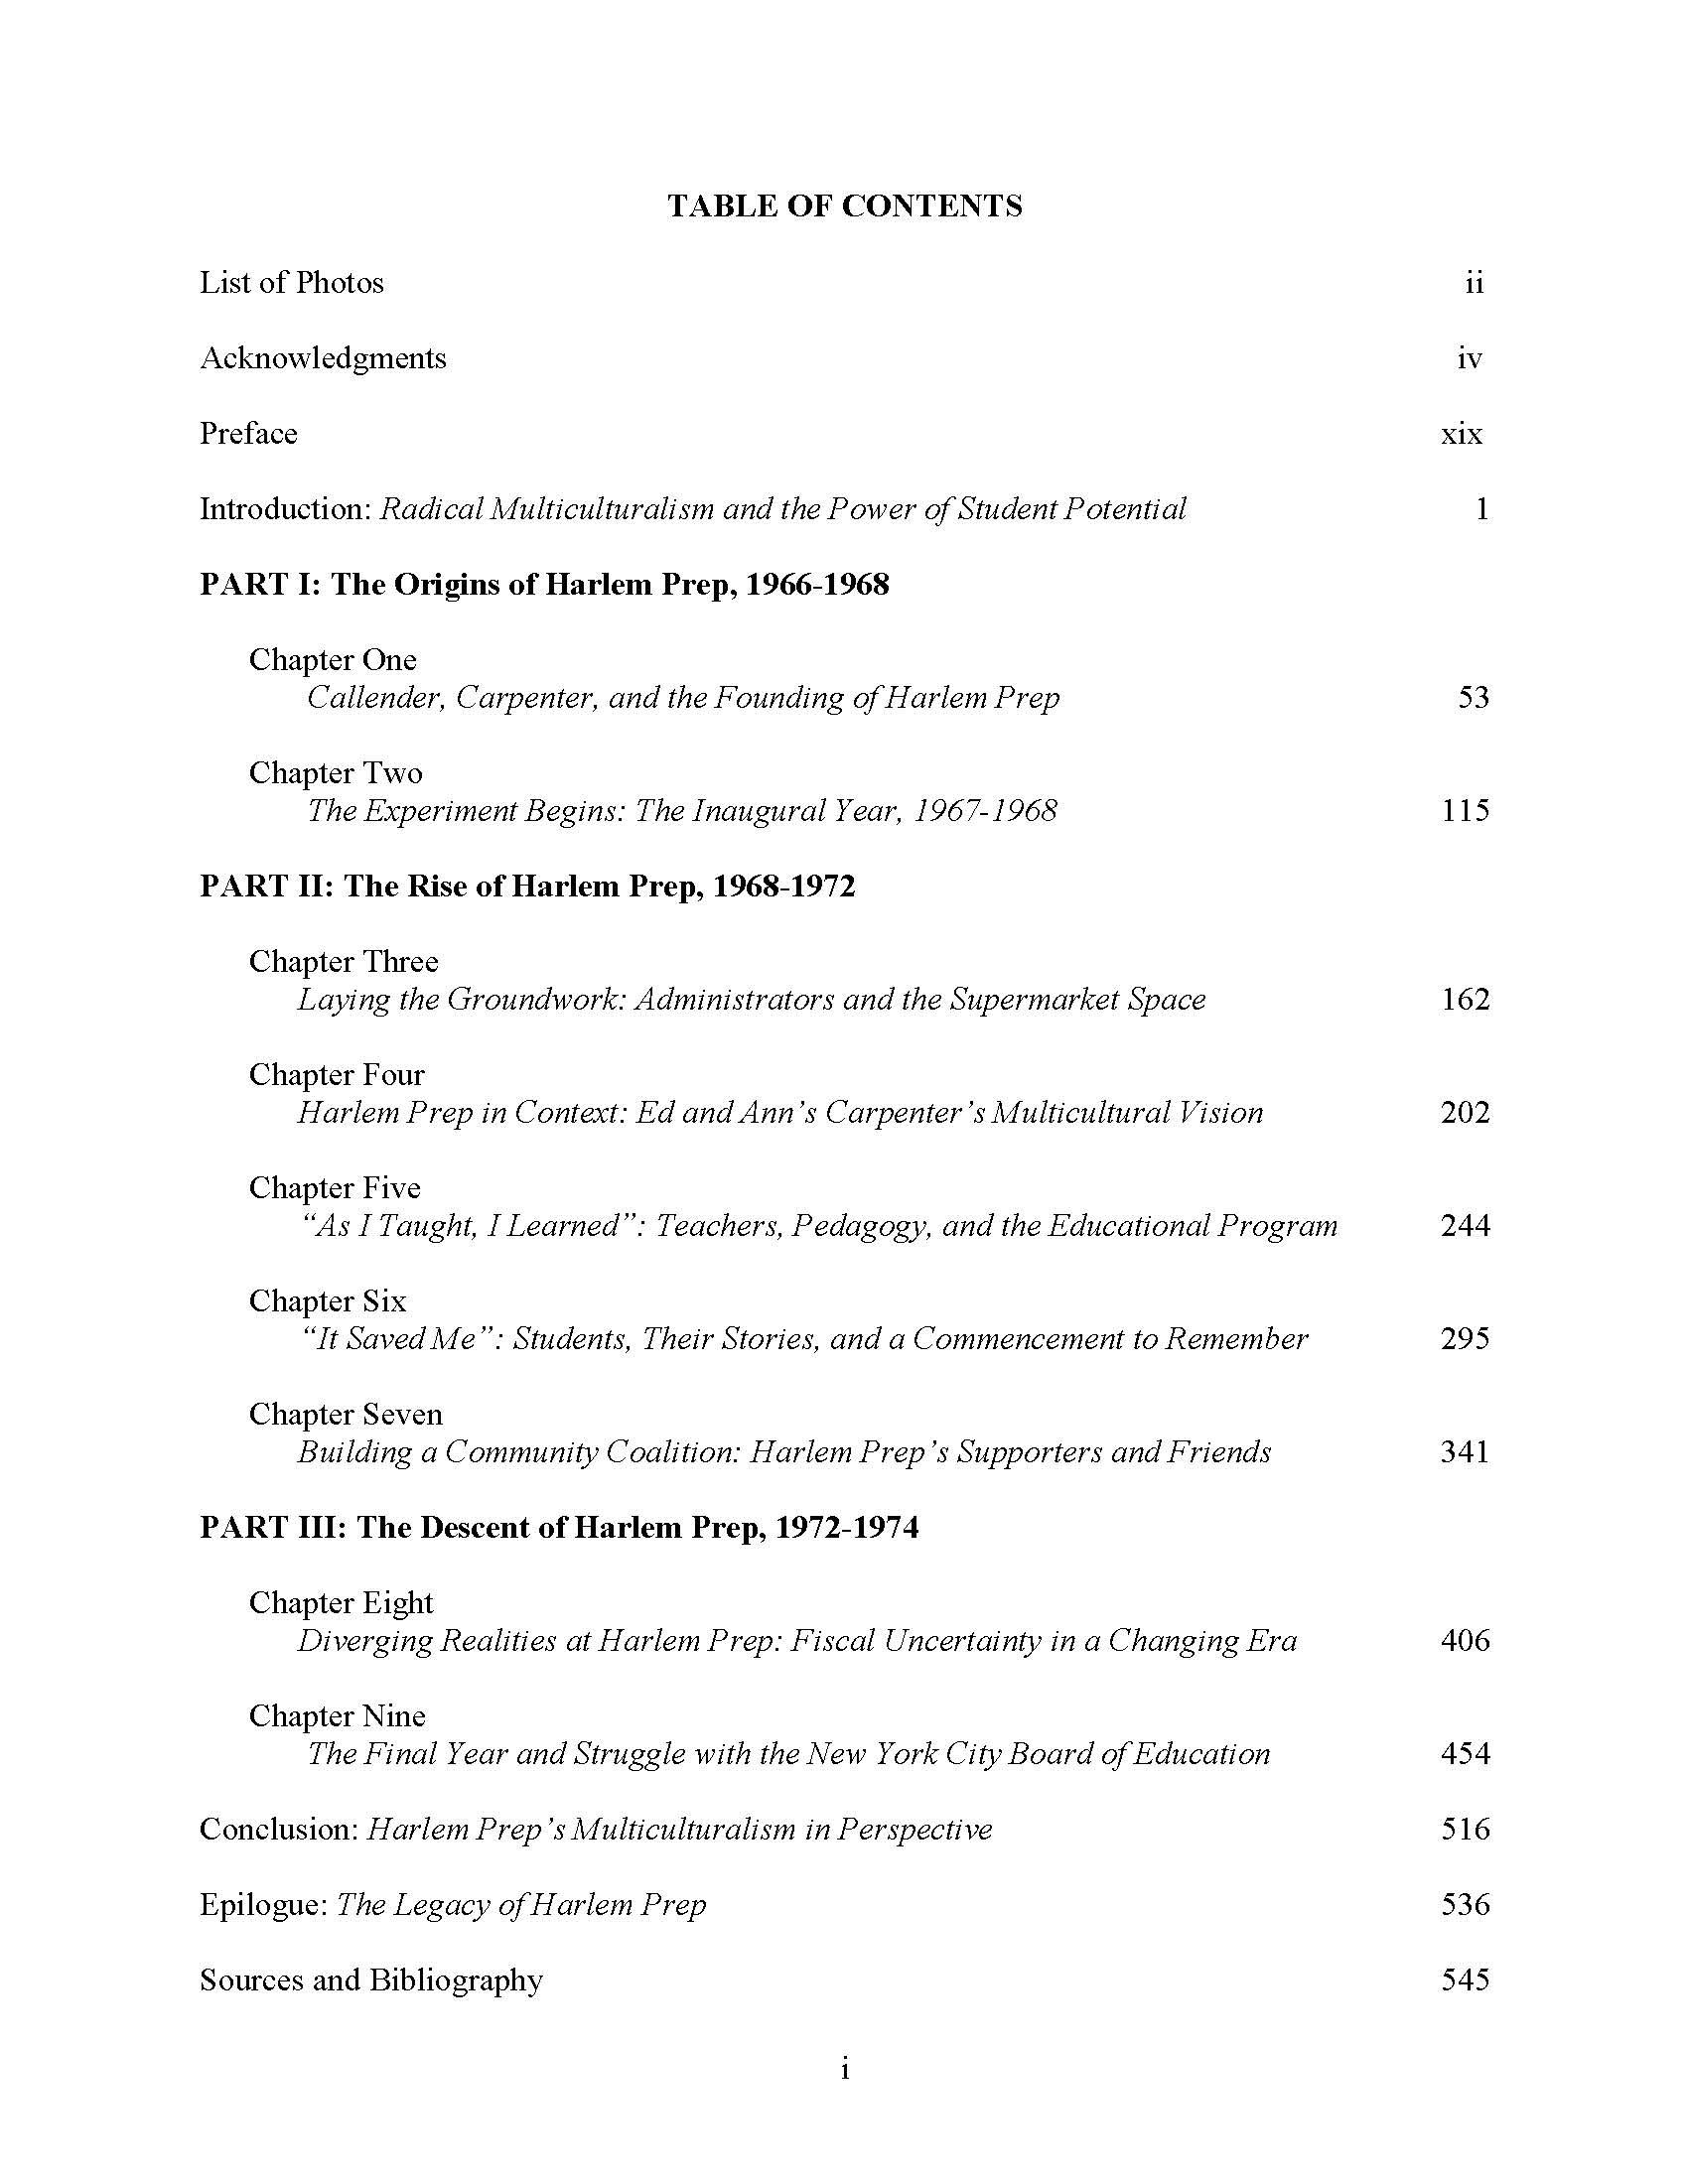 Table of Contents official.jpg